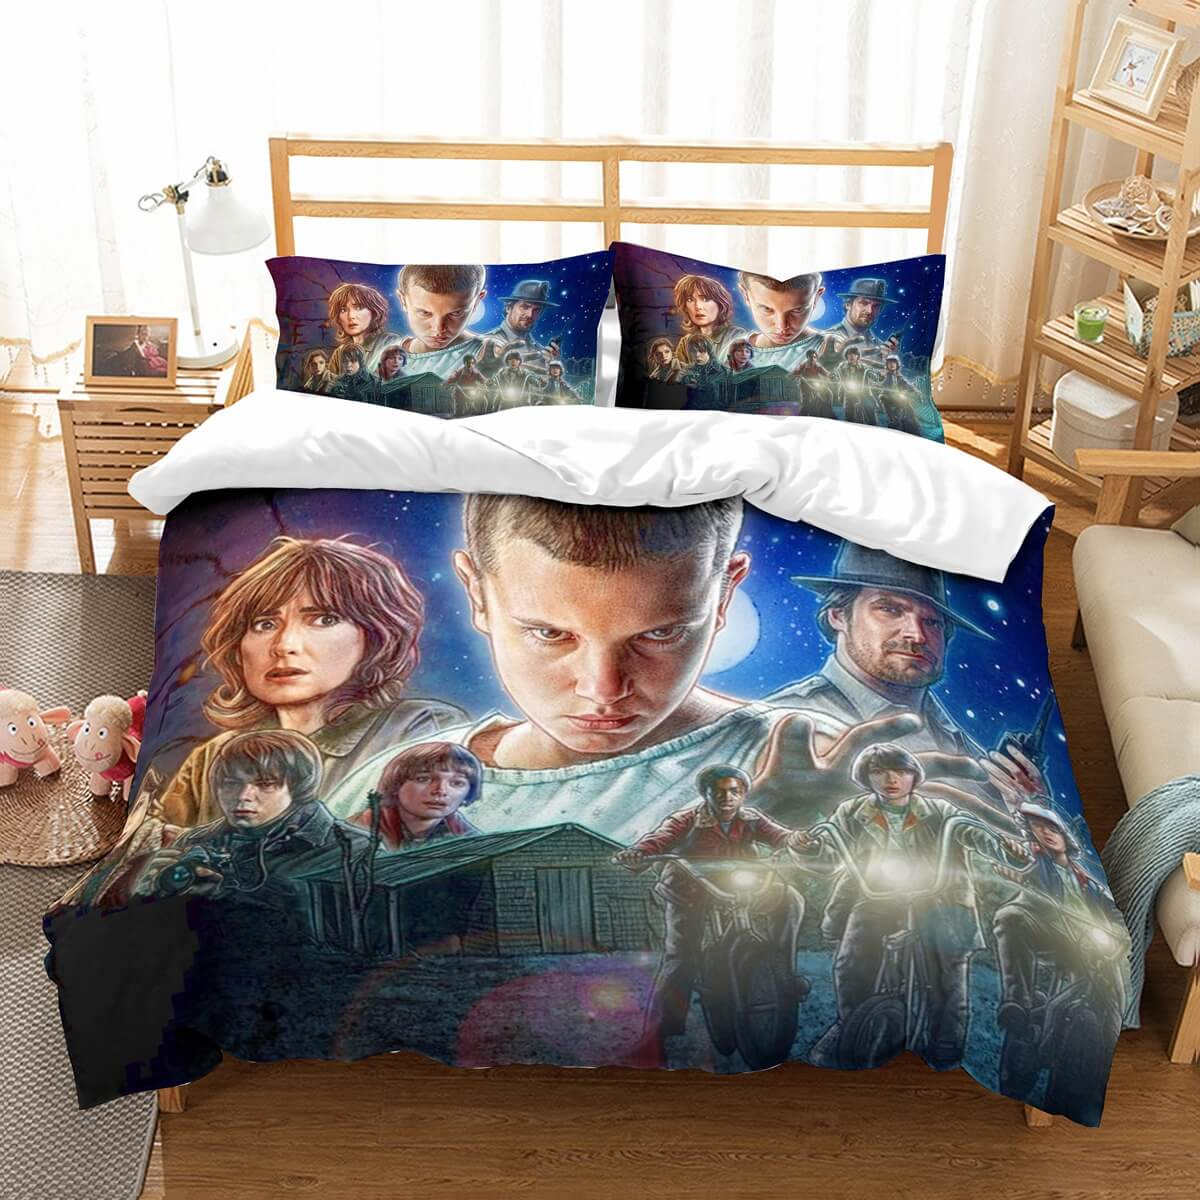 3D Customize Stranger Things Bedding Set Duvet Cover Set Bedroom Set Bedlinen